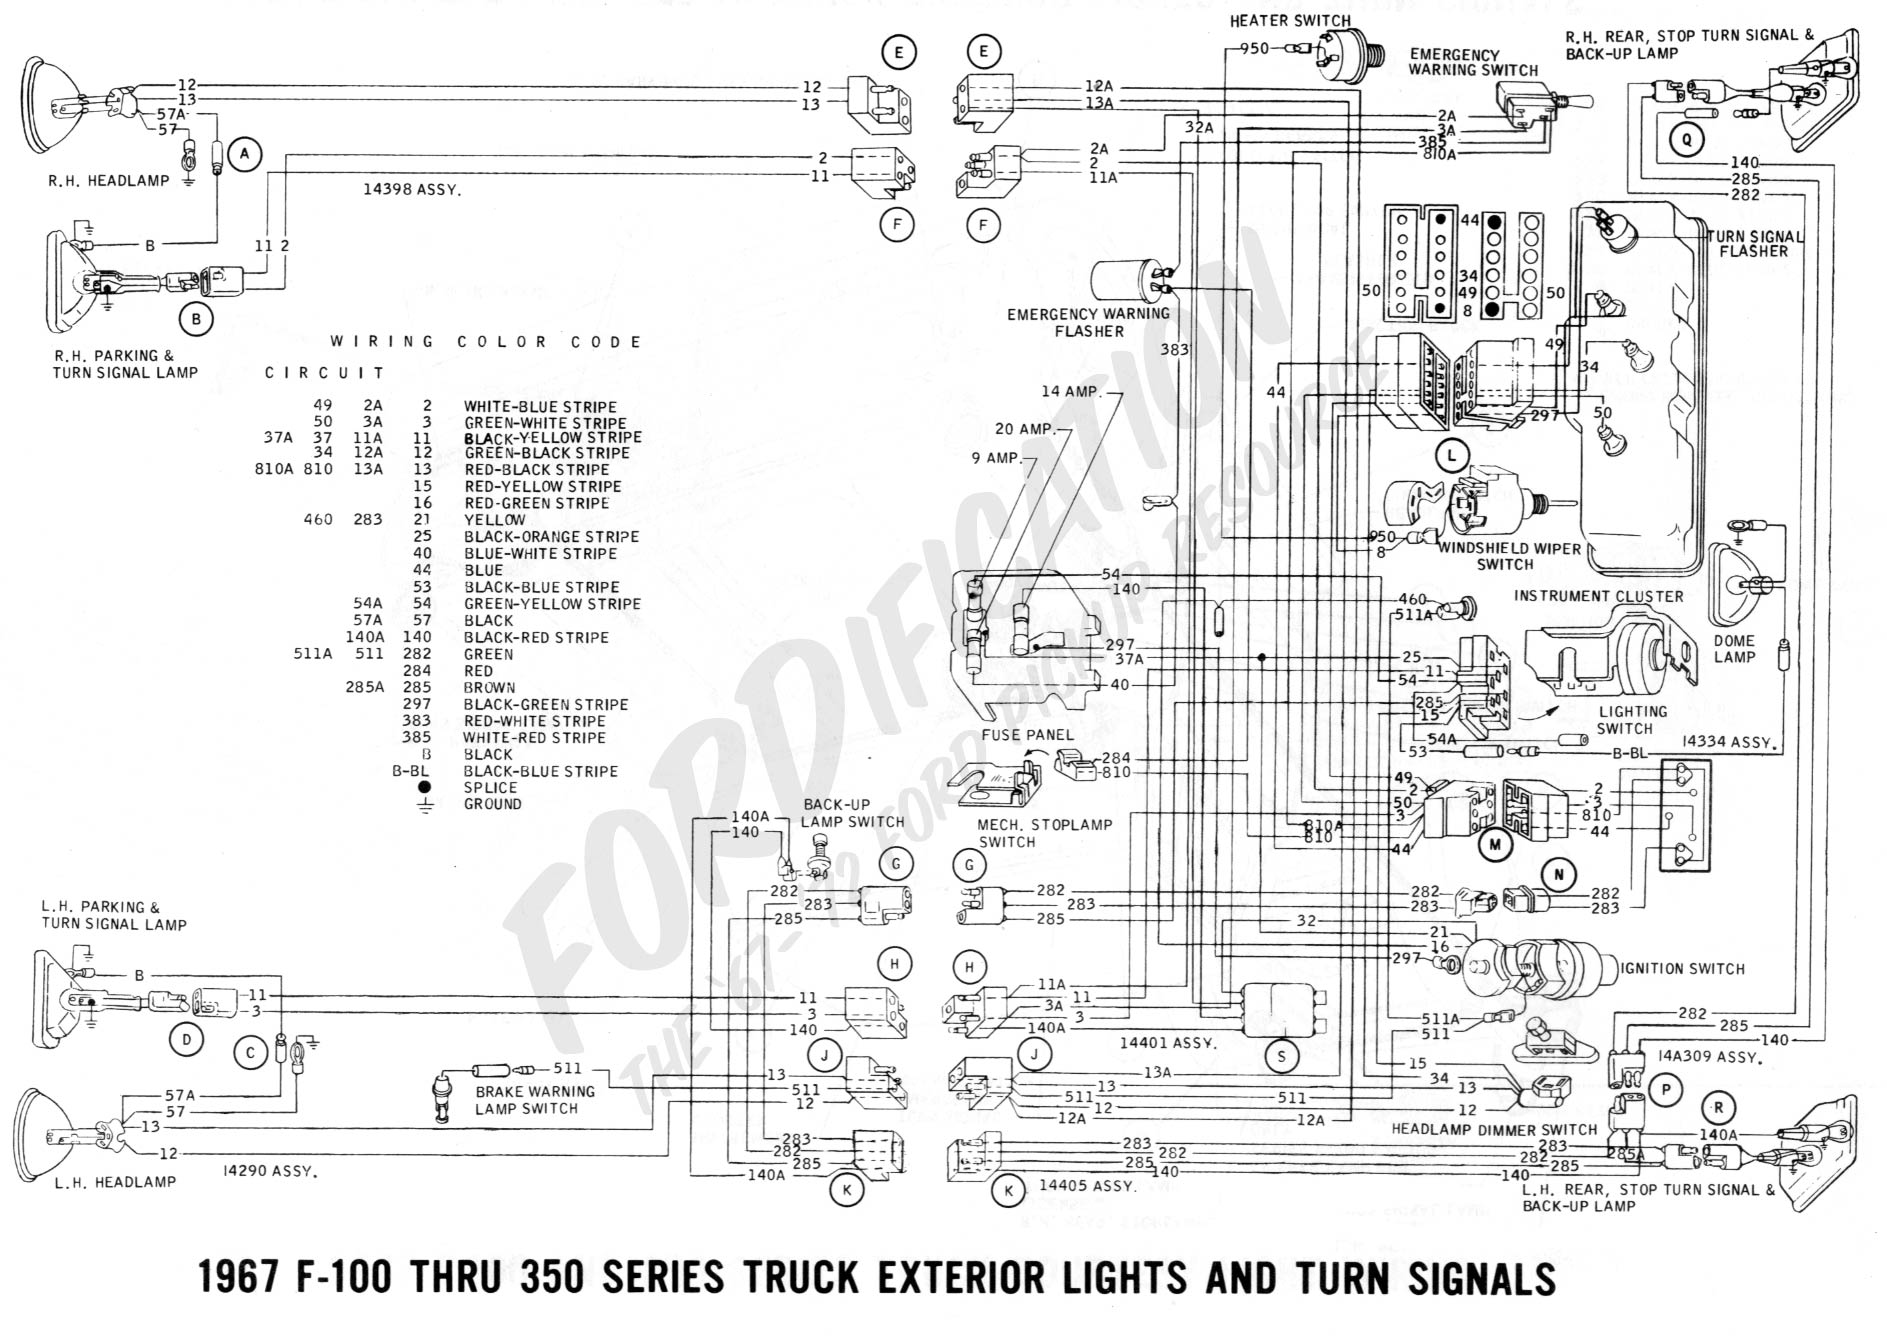 1967 Chevy Pickup Wiring Diagram Schematic List Of 64 For 1968 Ford F100 Pick Up Auto Electrical Rh Mit Edu Uk Bitoku